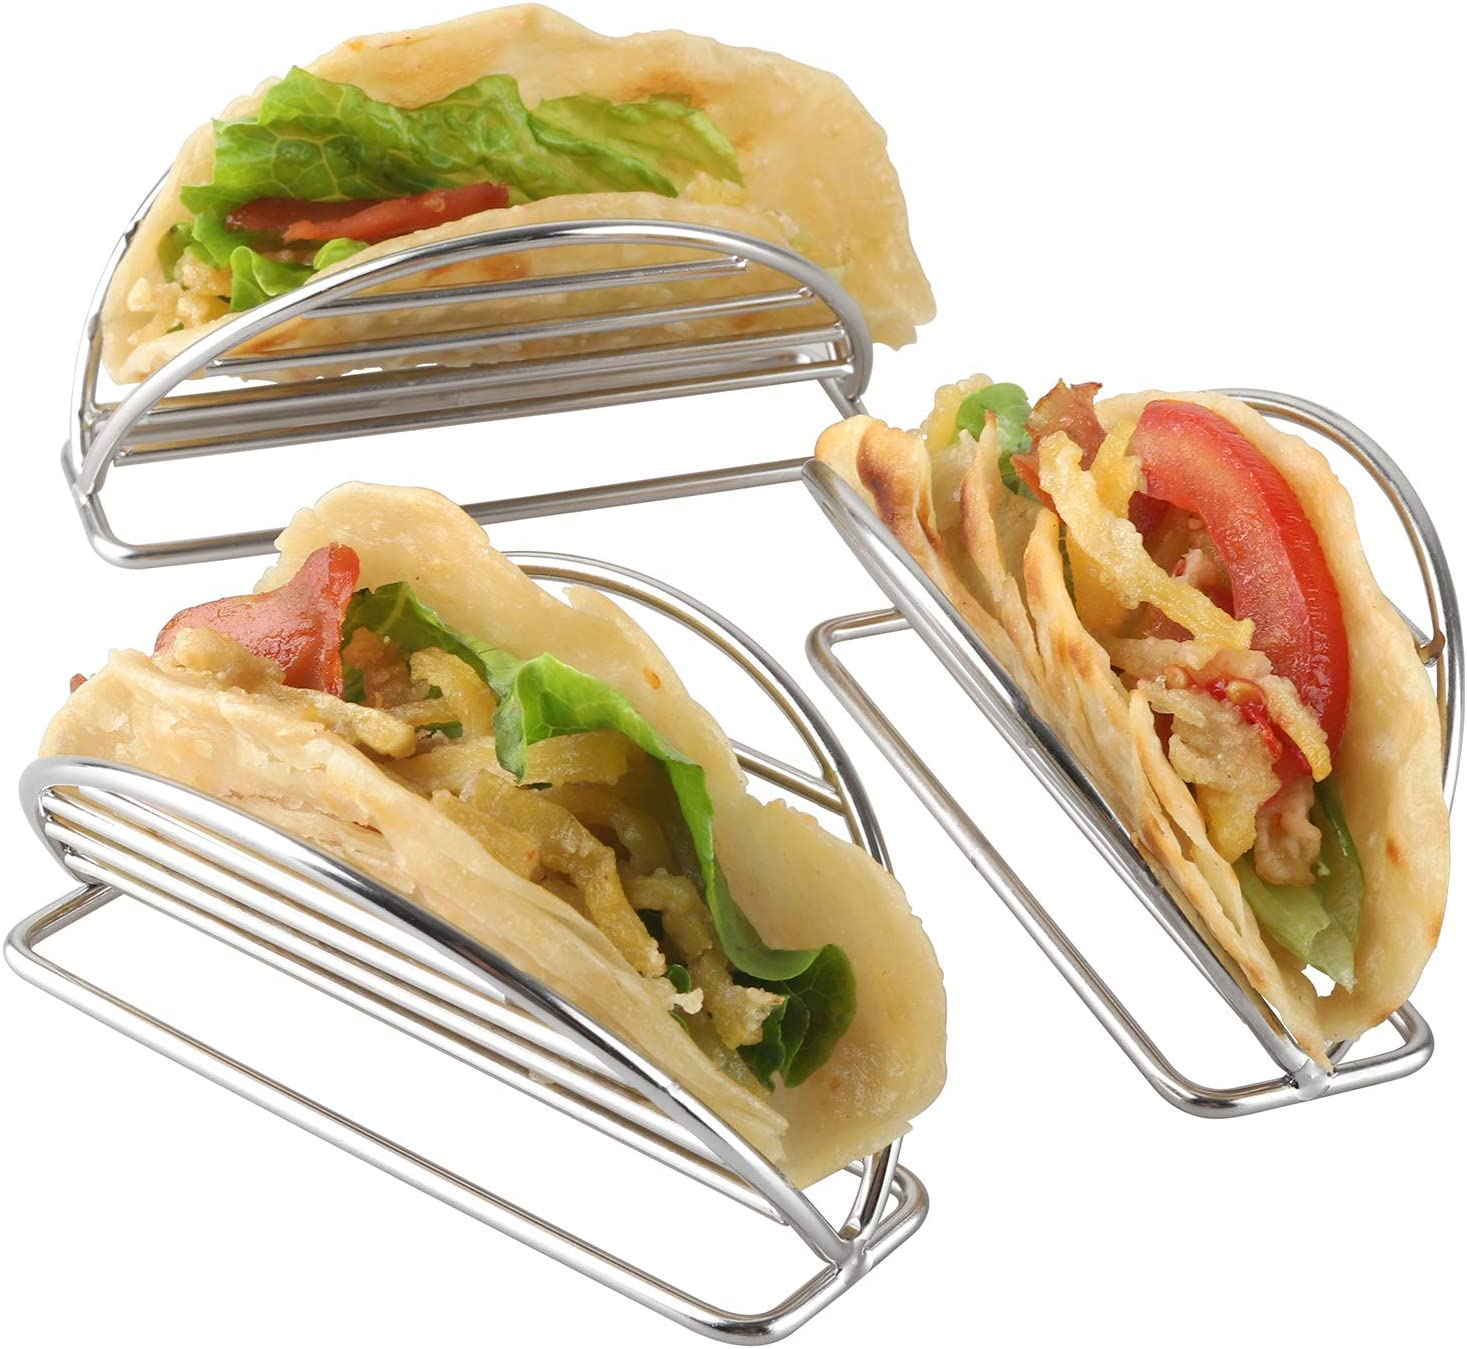 Stainless Steel Spanish Taco Shell Rack Holds Trays for Oven Baking Grill Milkary 2 PCS Taco Holders Stand with 10in Kitchen Clip Dishwasher Safe